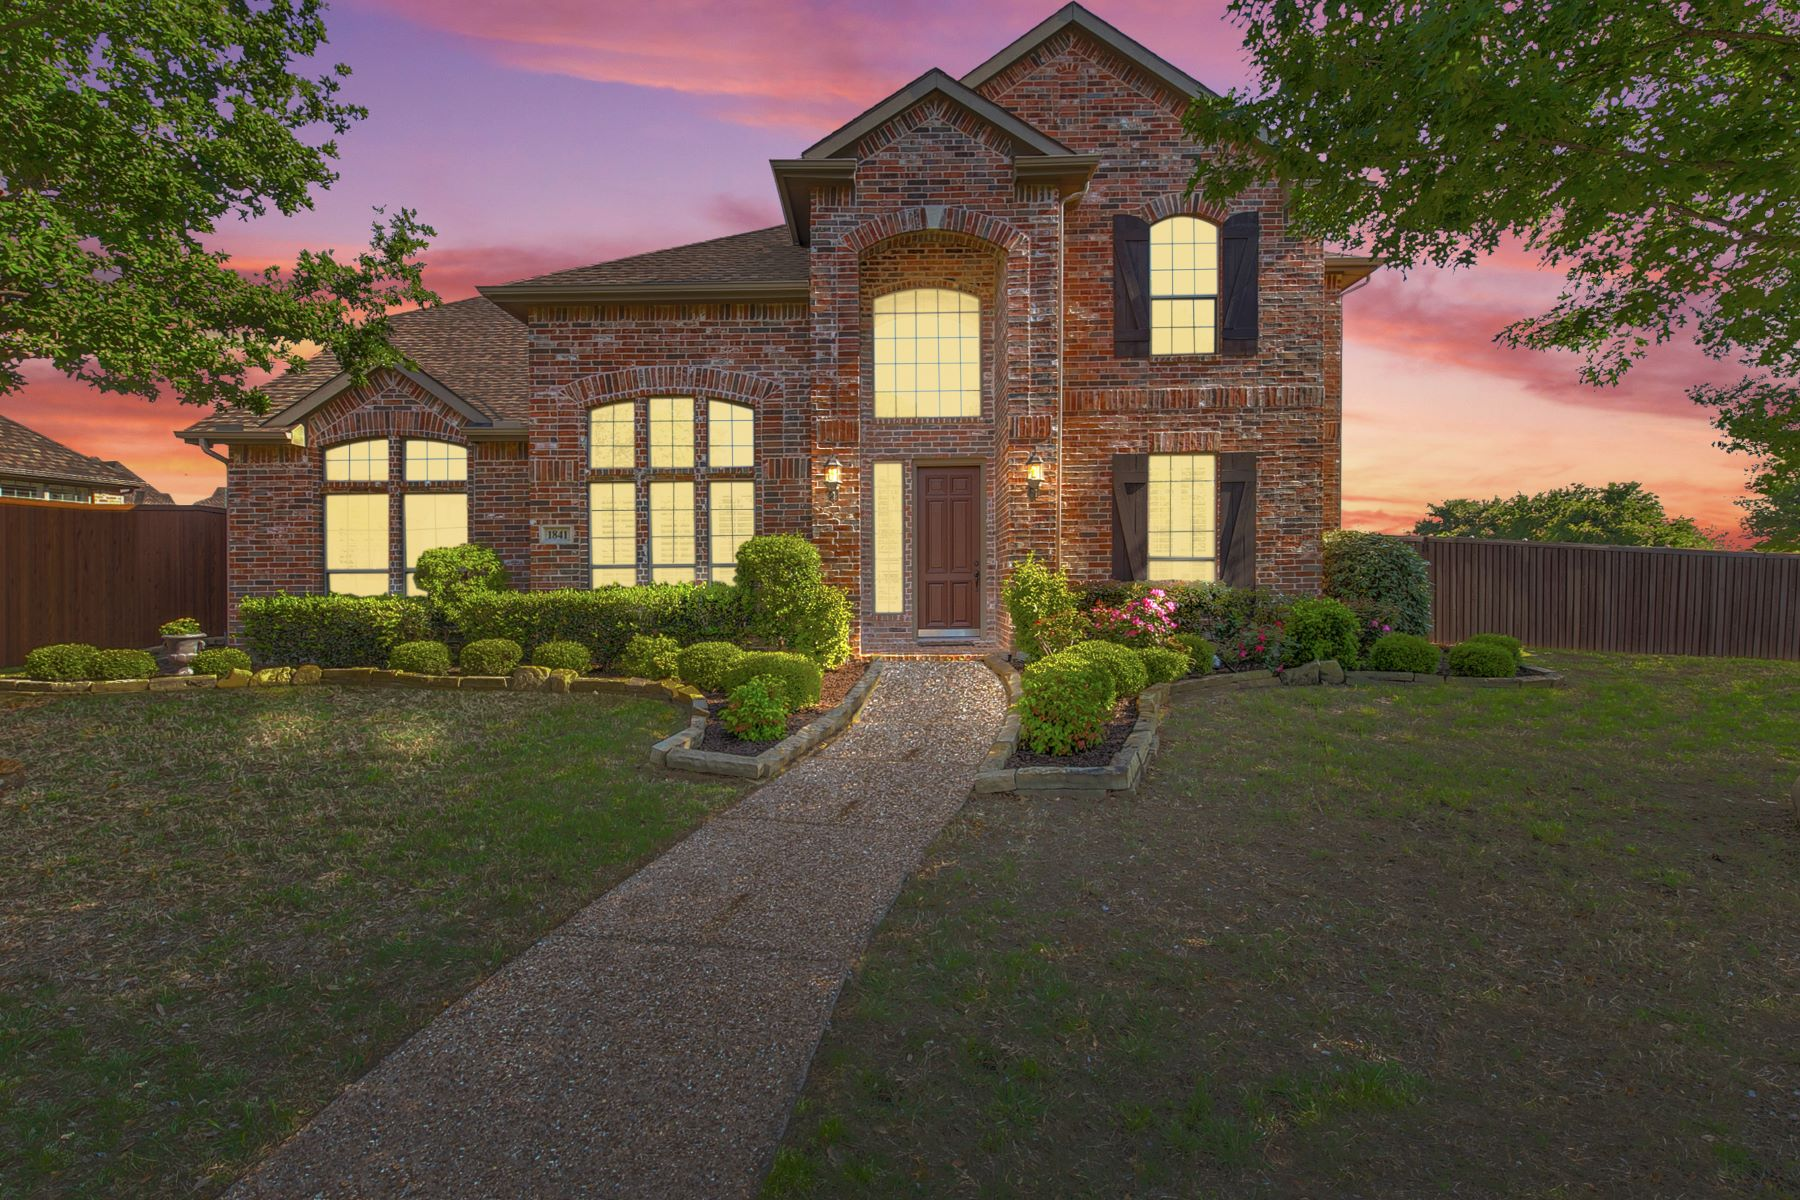 Single Family Homes for Sale at Twin Creeks Traditional 1841 Port Isabel Drive Allen, Texas 75013 United States